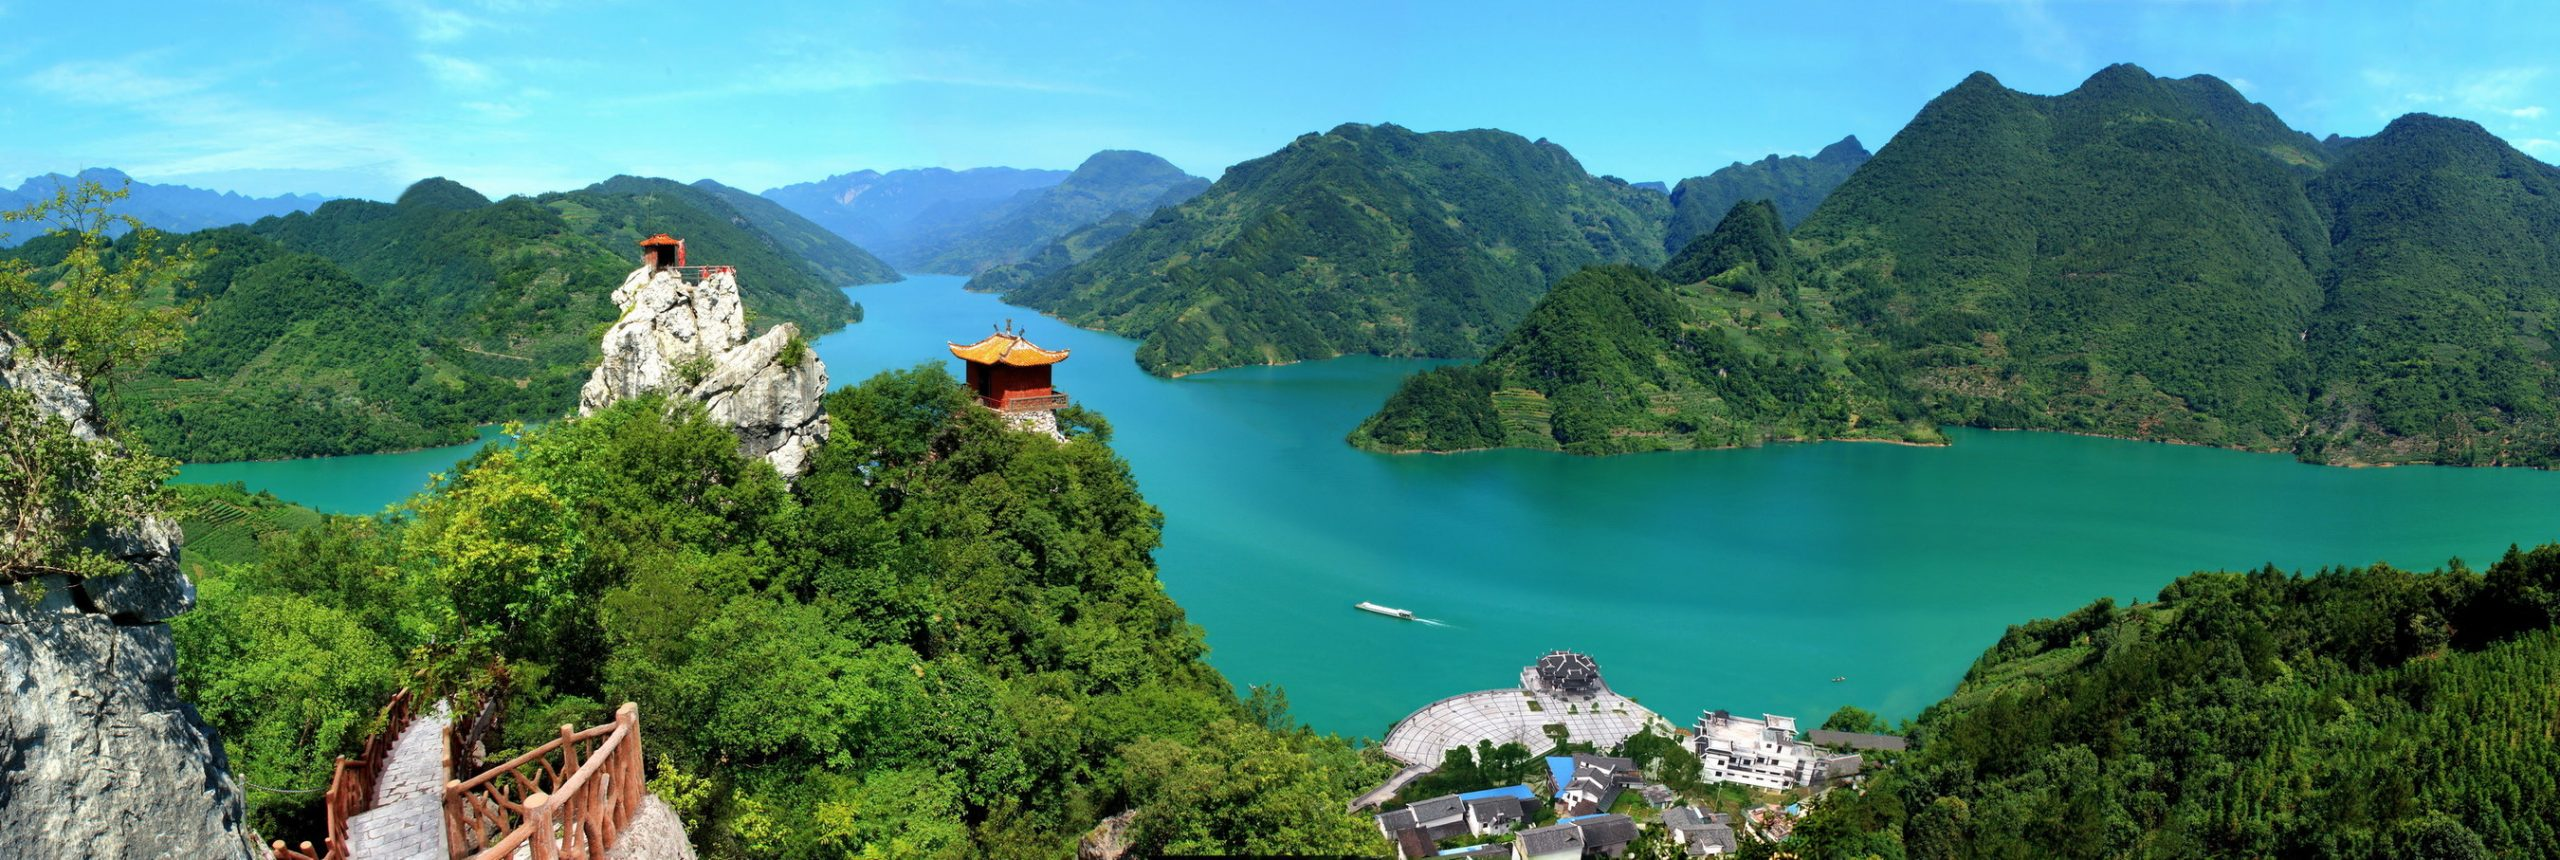 Yichang, a world famous hydropower city and home to a number of ancient Chinese celebrities, made a stunning appearance in front of the world, according to the Publicity Department of Yichang Municipality.